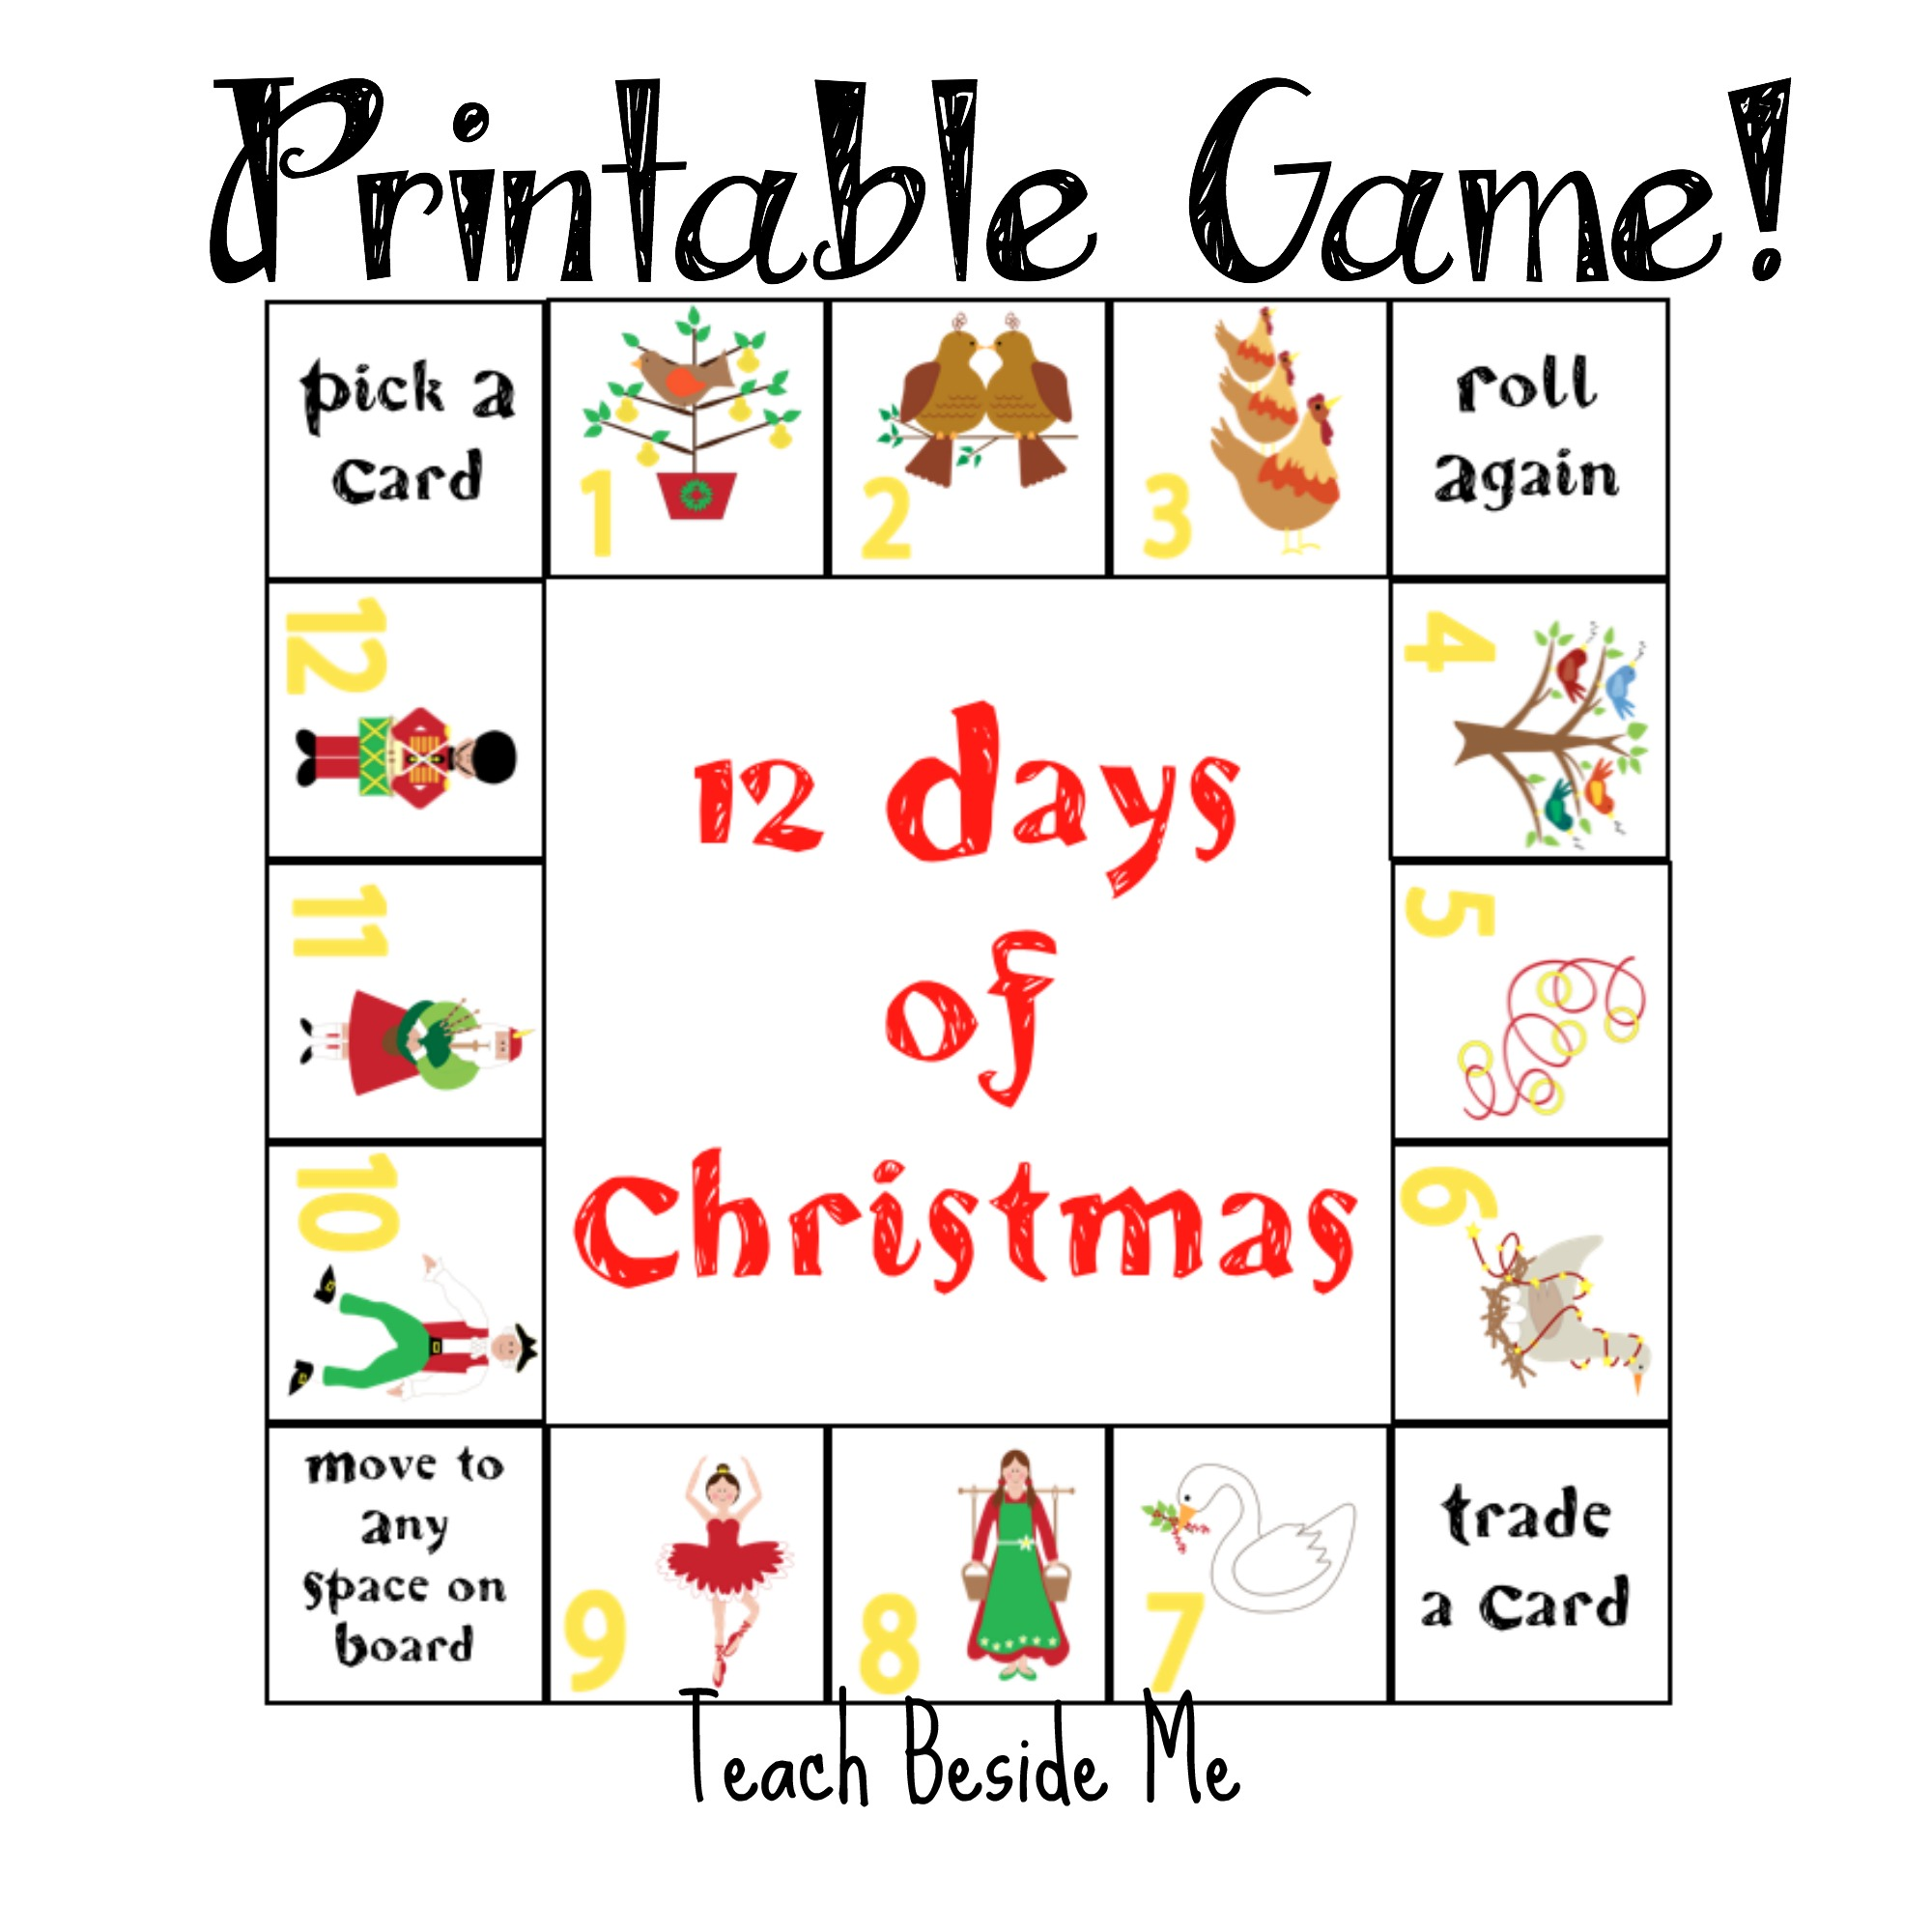 $ 12 Days of Christmas Game